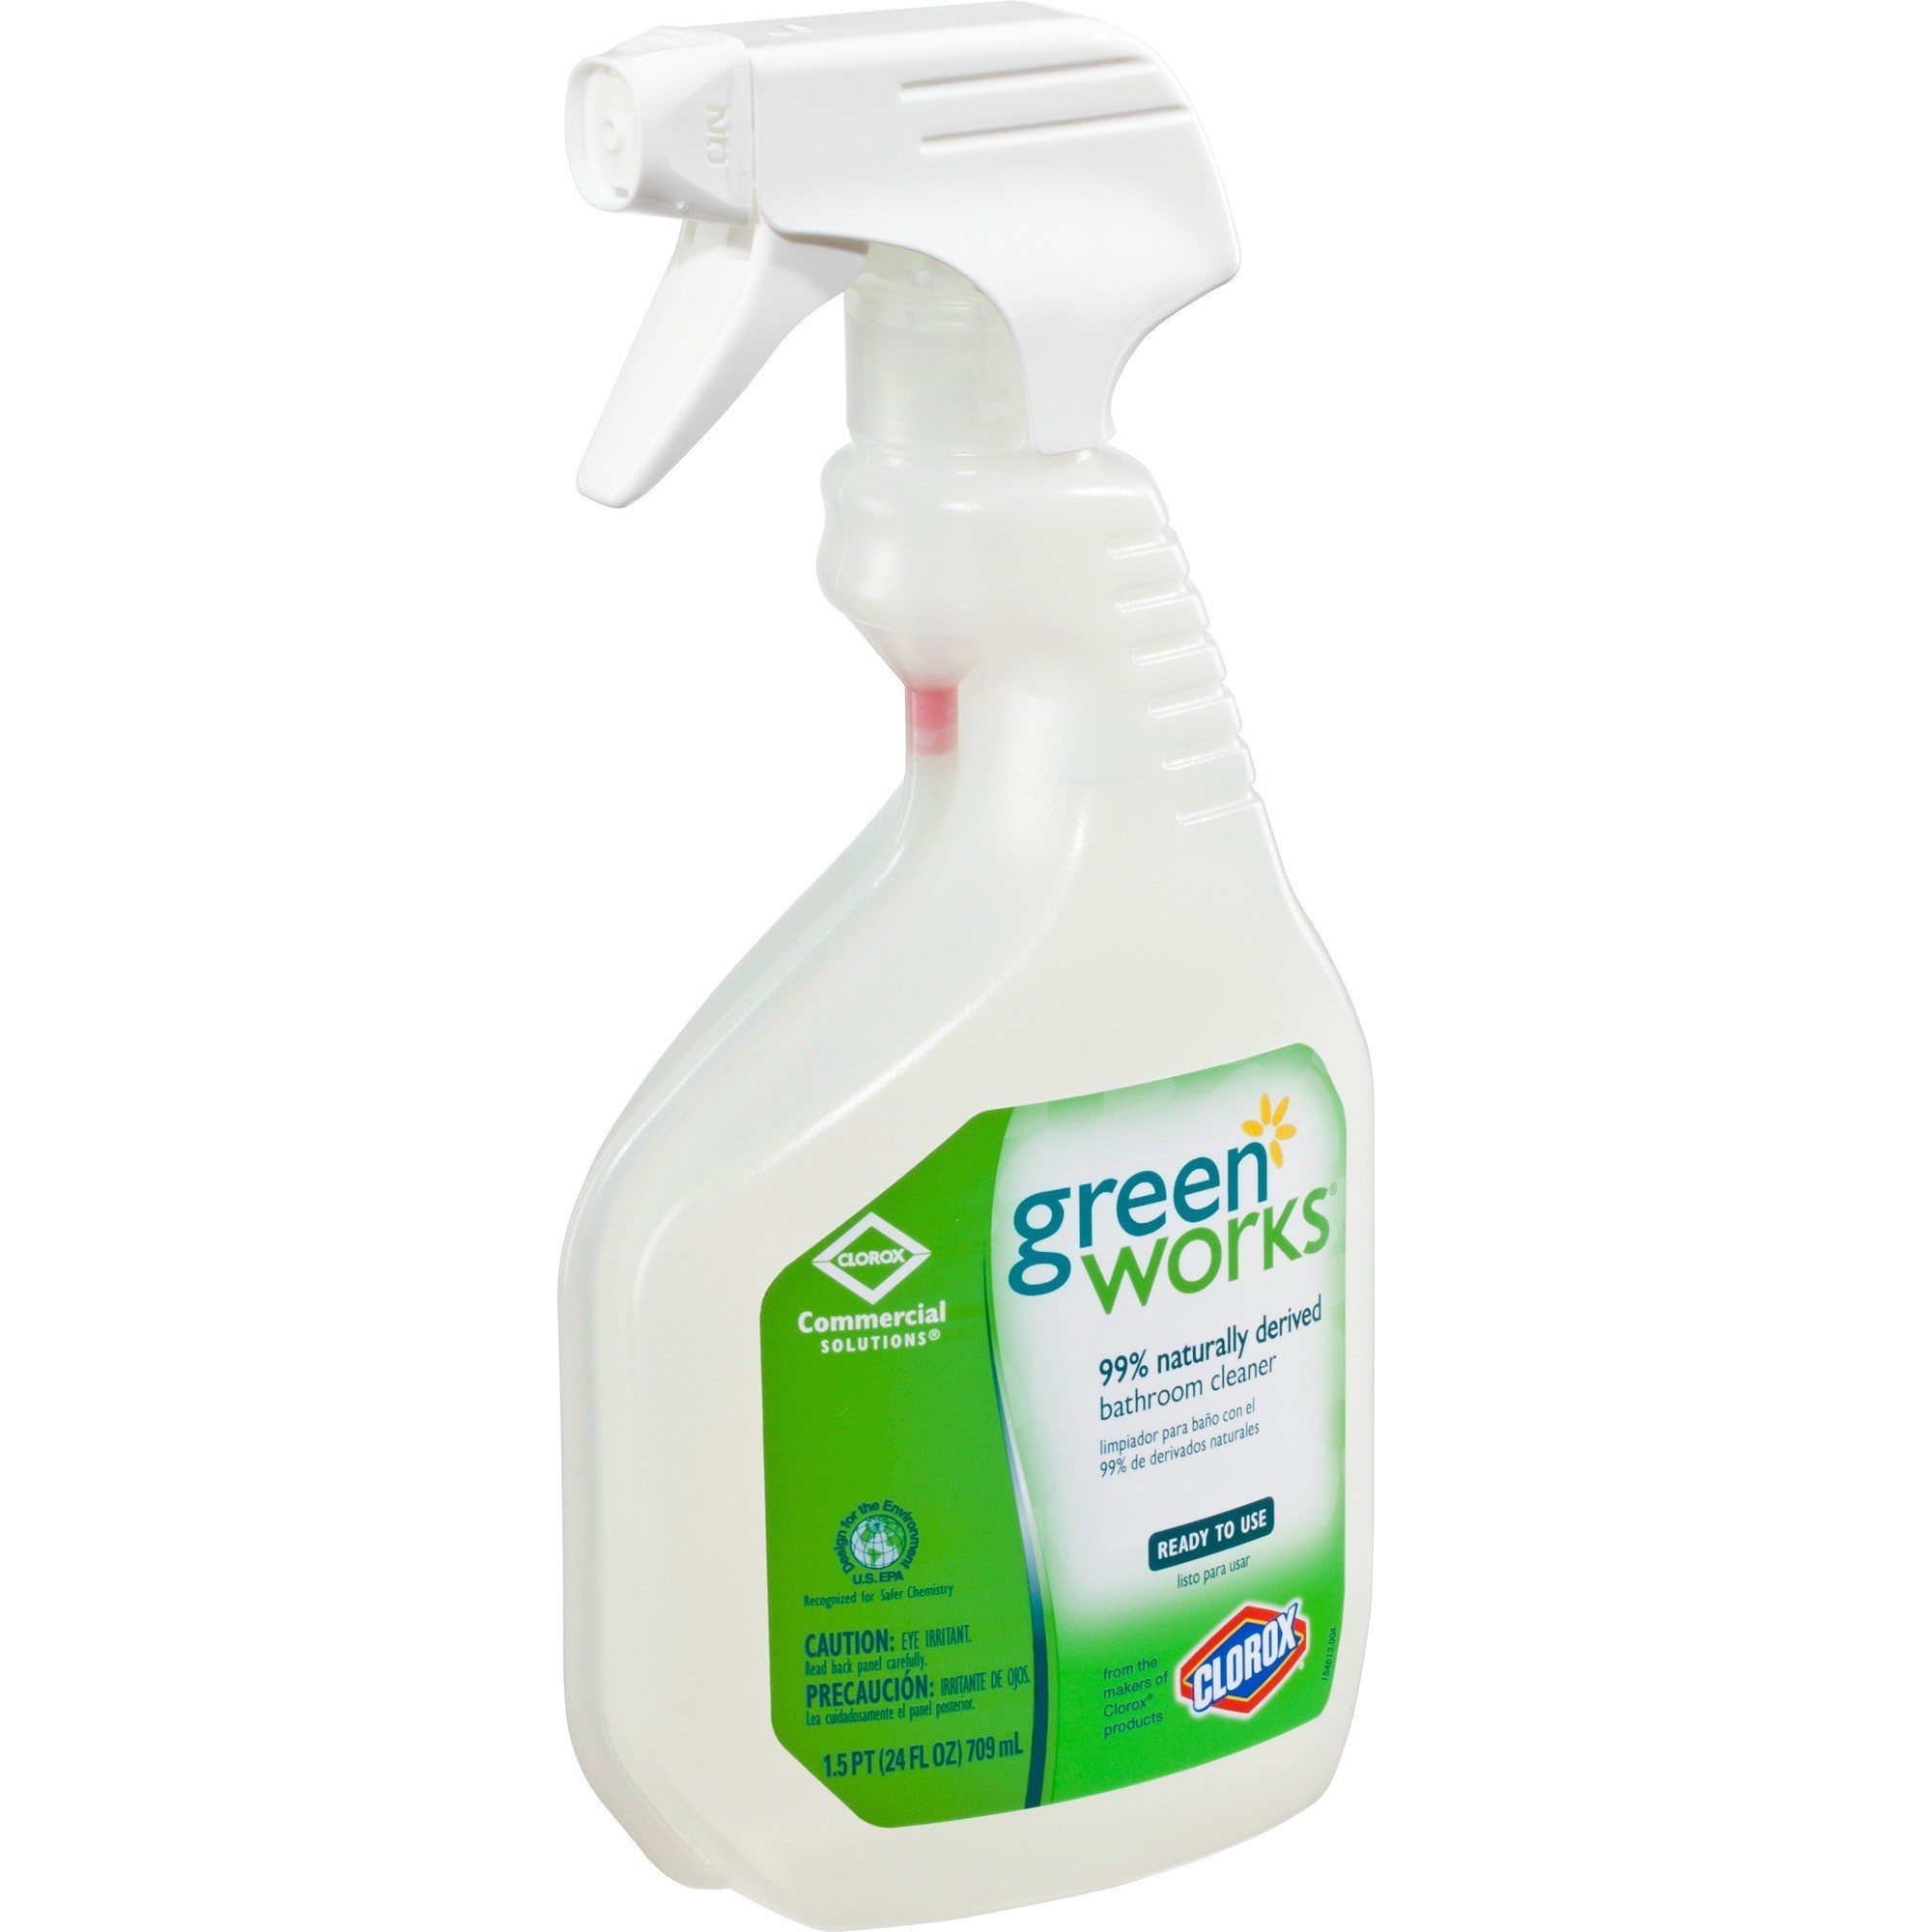 Clorox Commercial Solutions Green Works, Bathroom Cleaner, Natural 24 Oz - EACH - GREEN